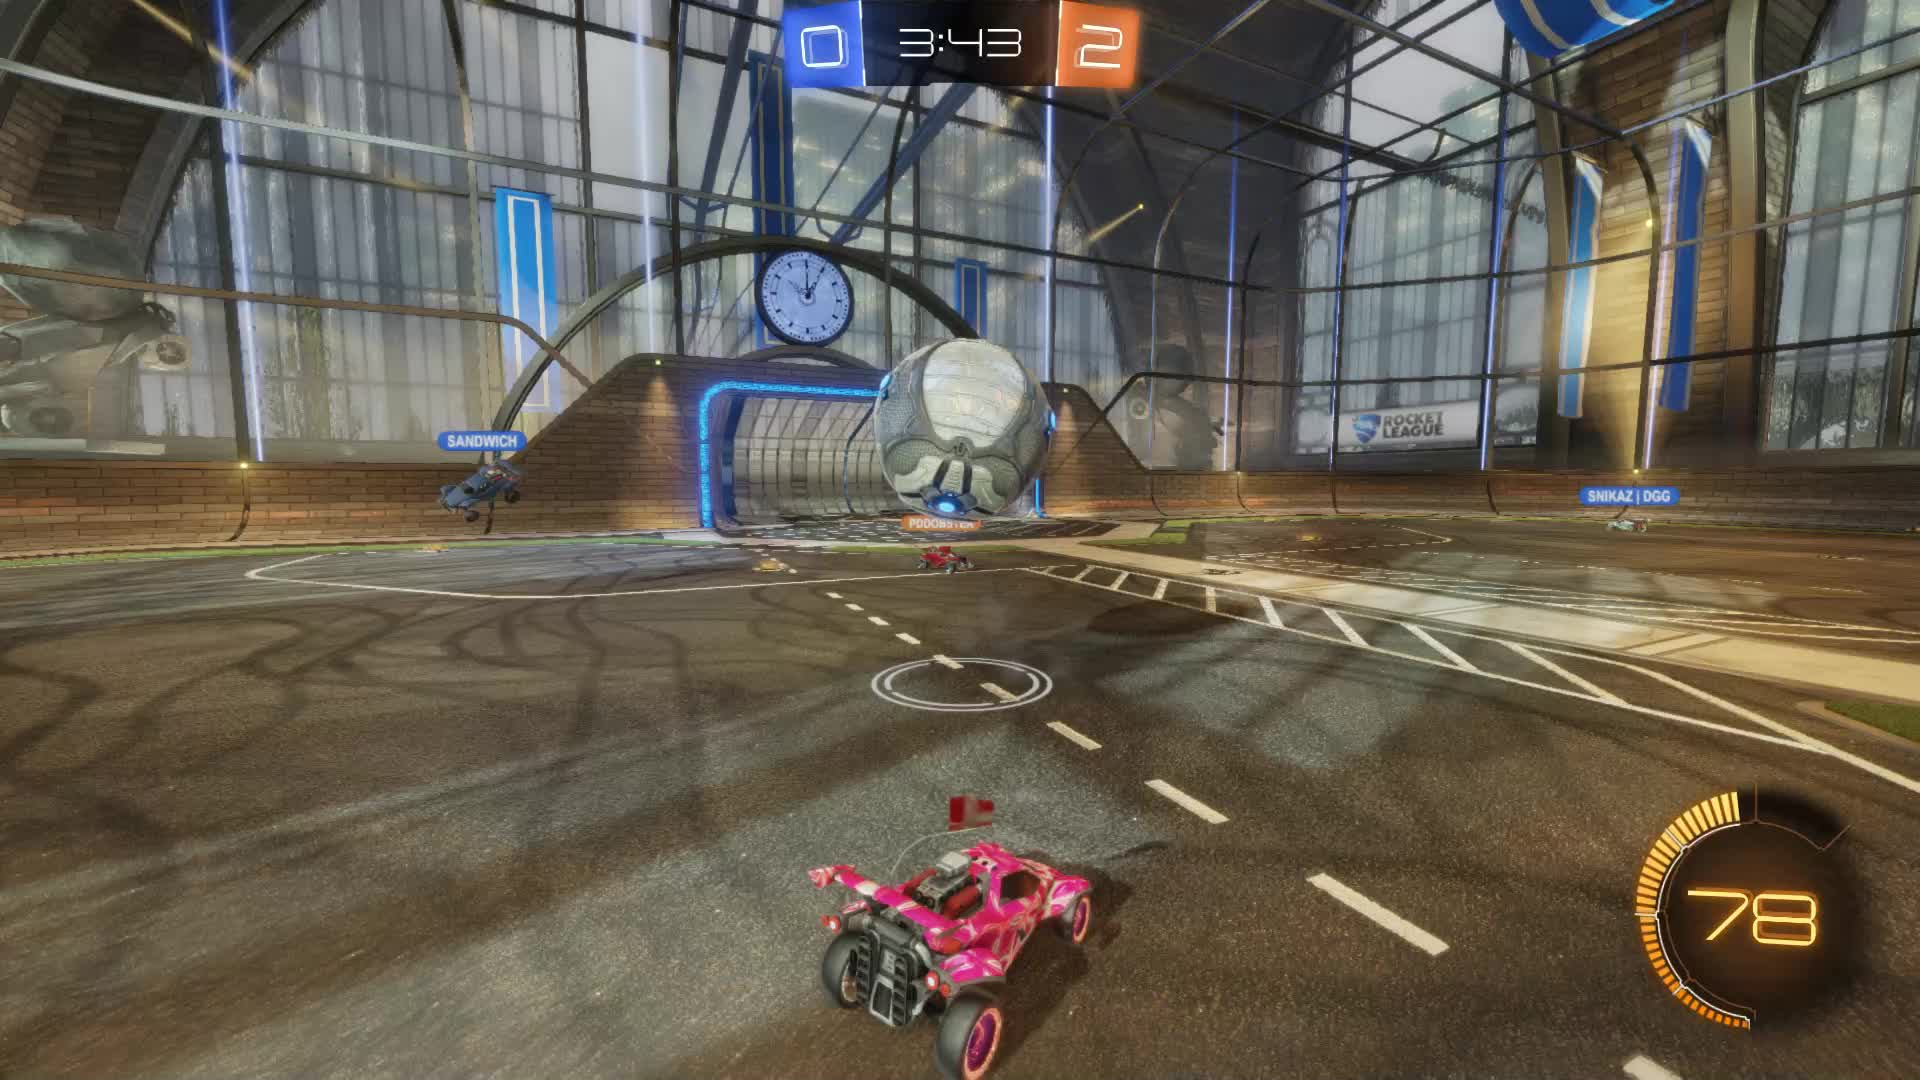 Assist, Gif Your Game, GifYourGame, Rocket League, RocketLeague, Snakes, Assist 1: Snakes GIFs